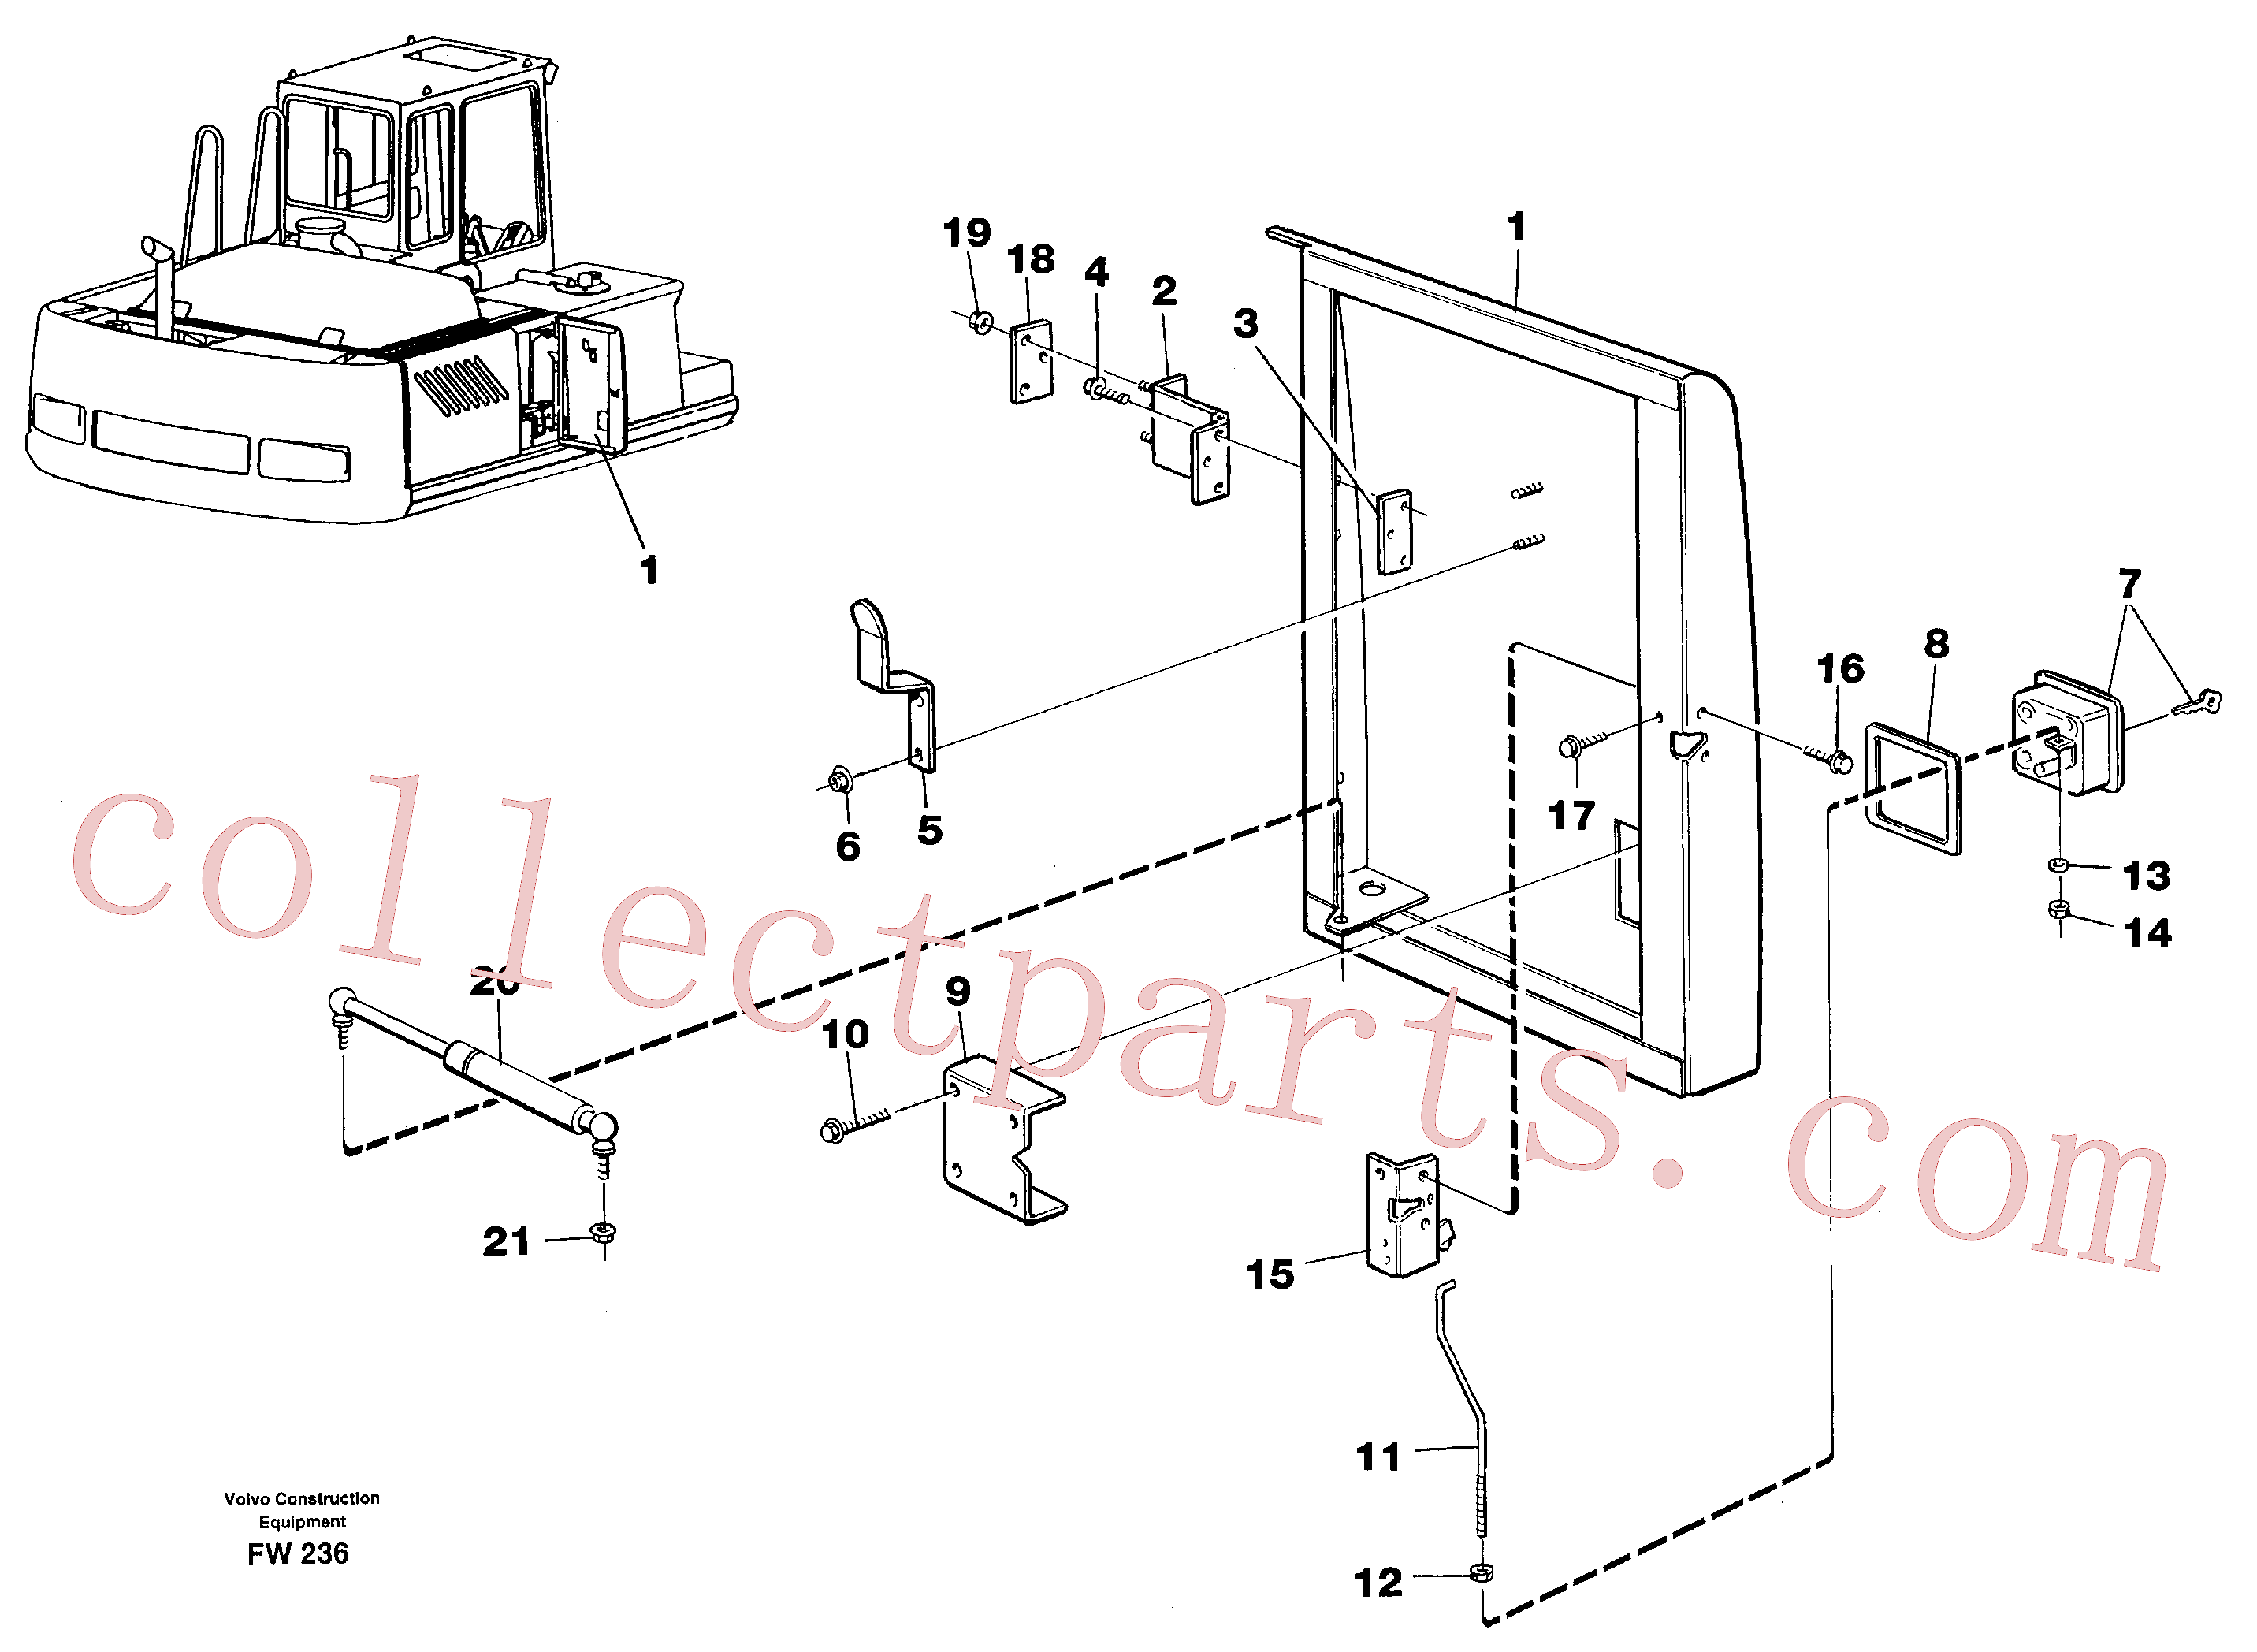 VOE11706359 for Volvo Door, centre, right(FW236 assembly)